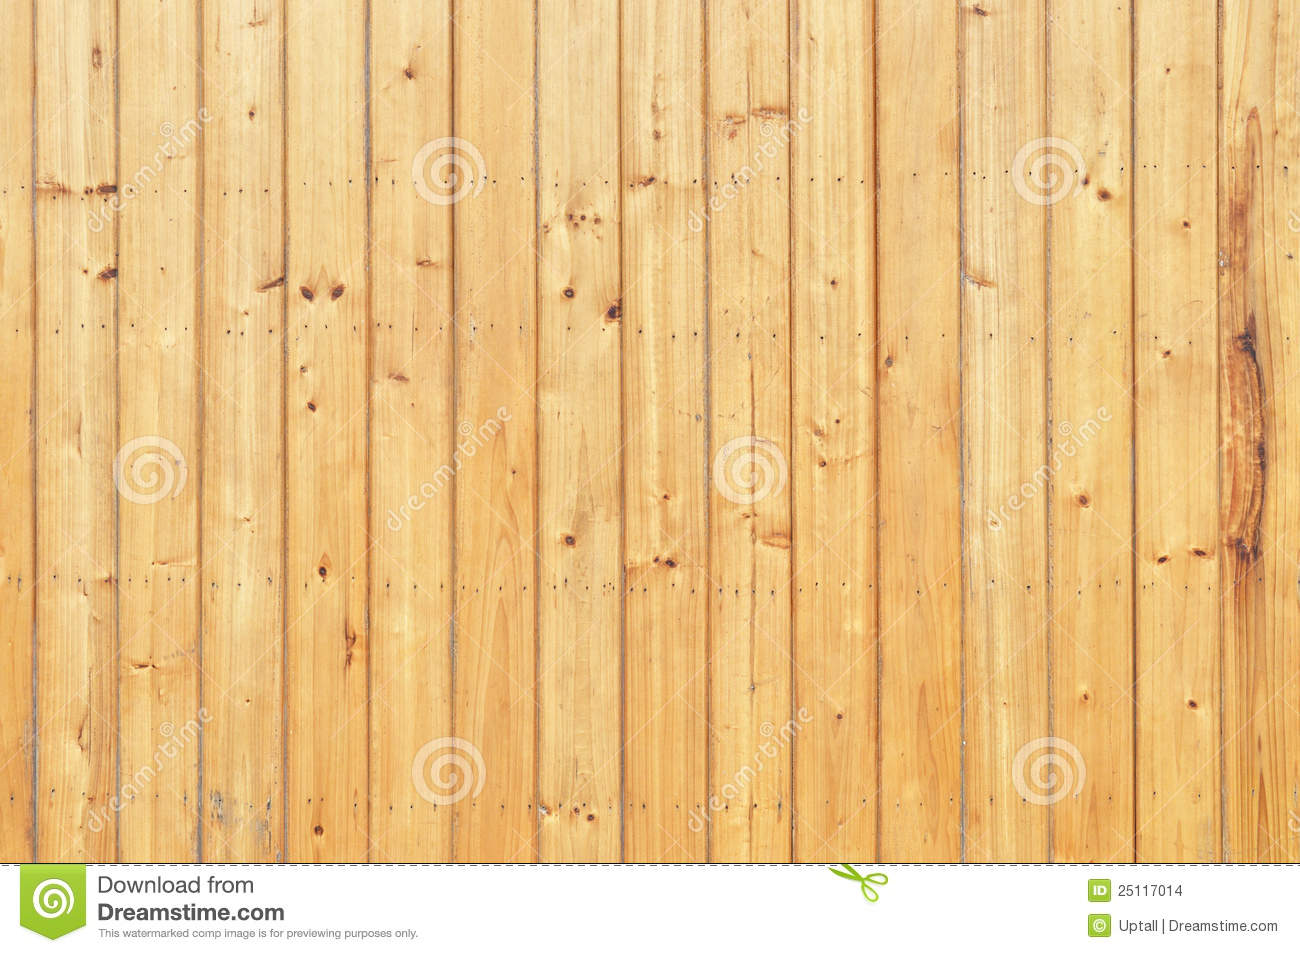 Wood Panel Background WB Designs - Wood Panel Pictures WB Designs